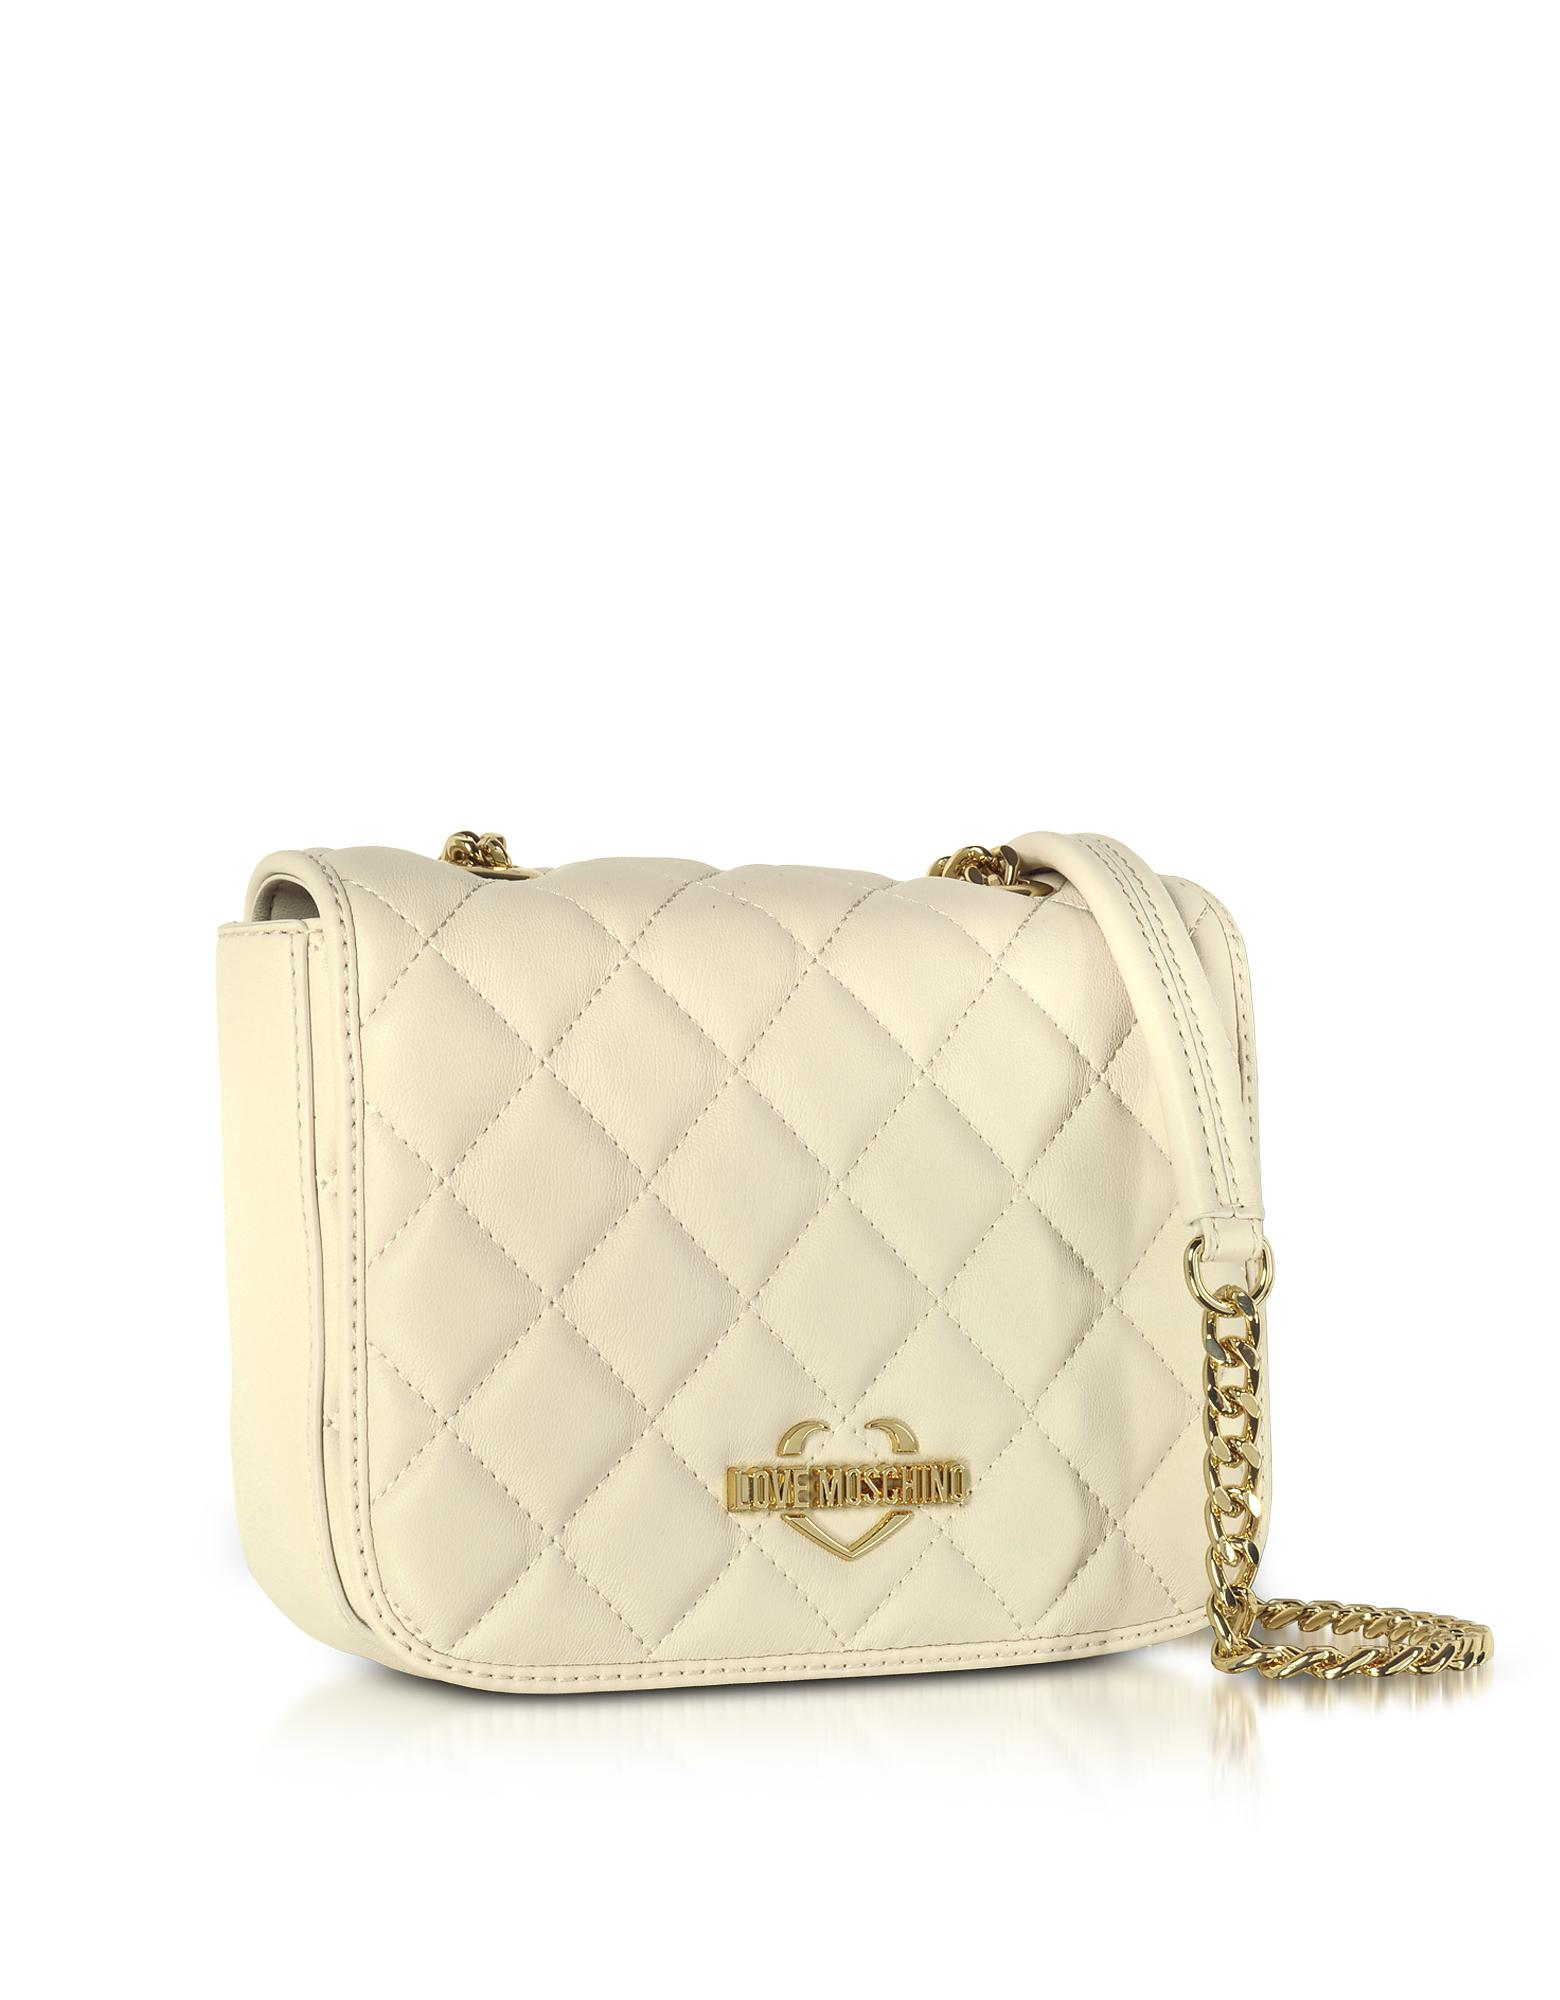 9fda126f4601 Lyst - Love moschino Superquilted Eco-leather Shoulder Bag in White